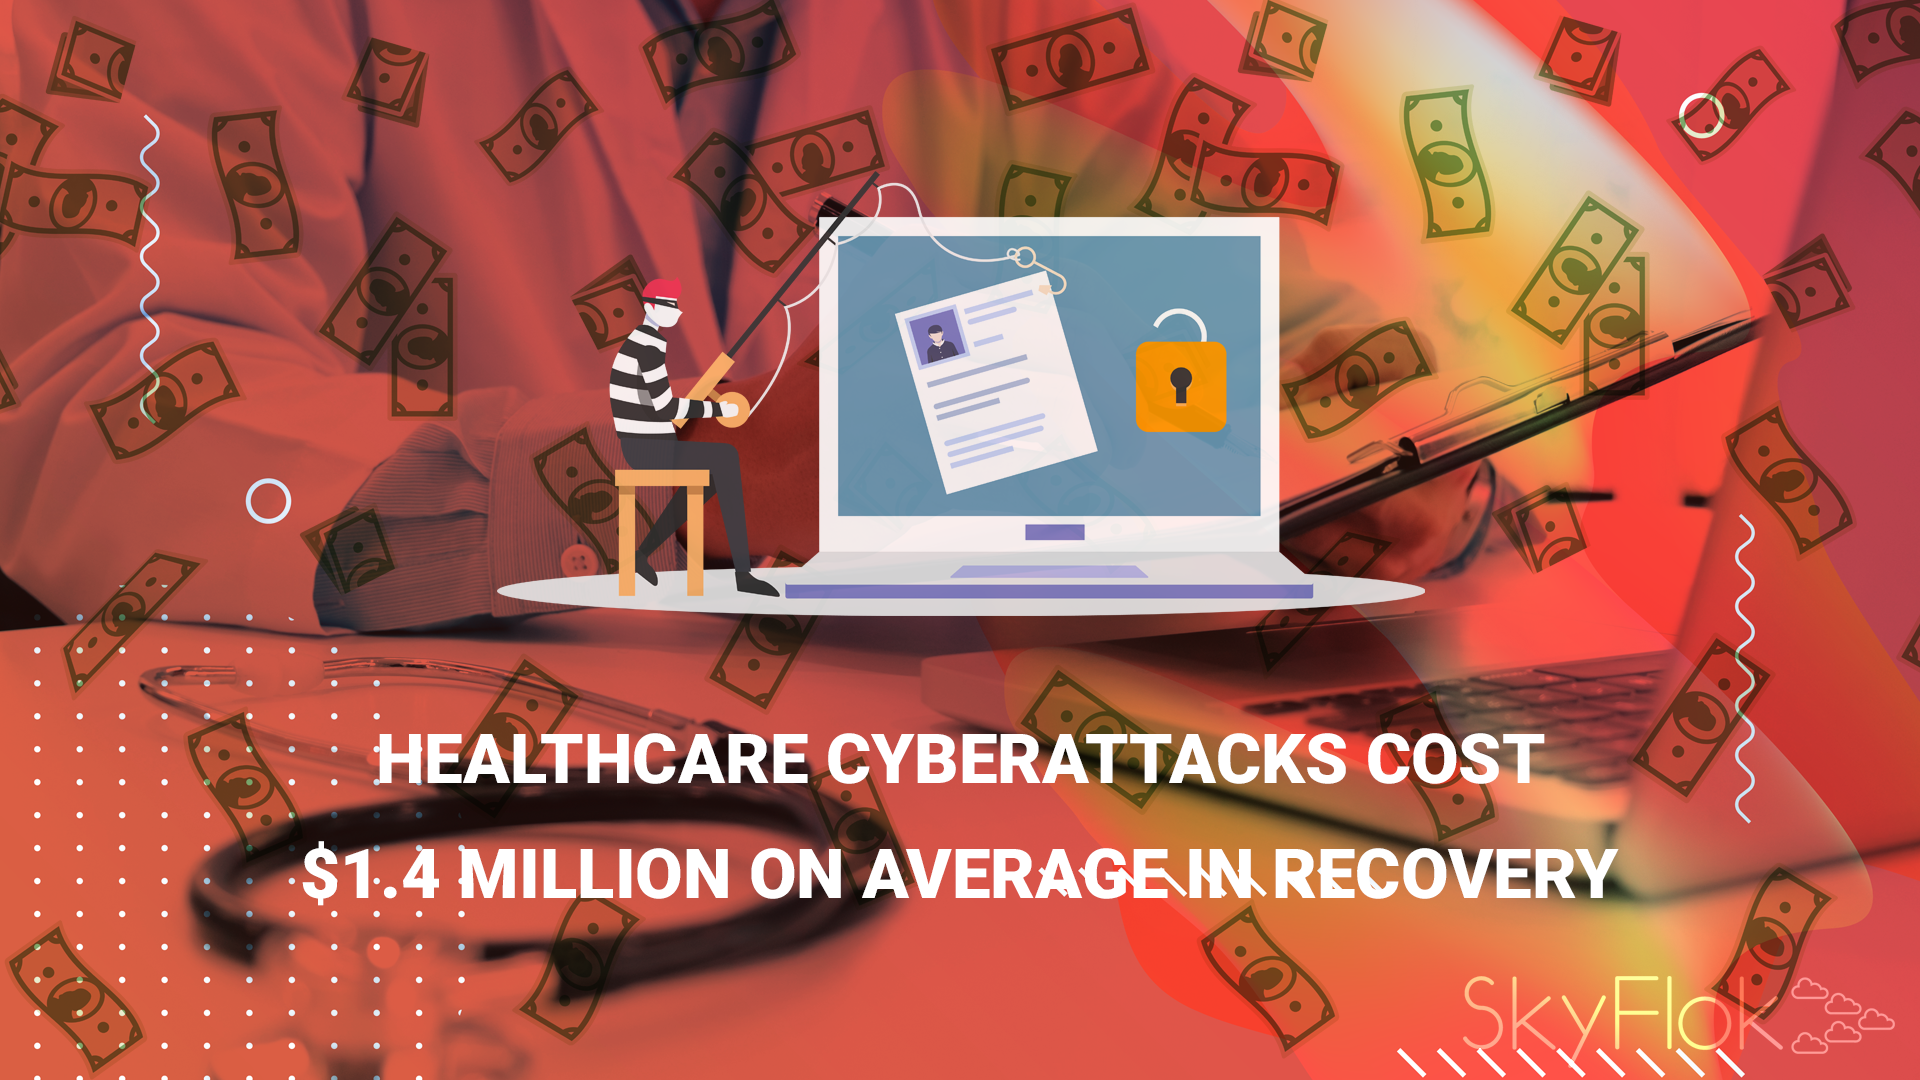 Healthcare Cyberattacks Cost $1.4 Million on Average in Recovery